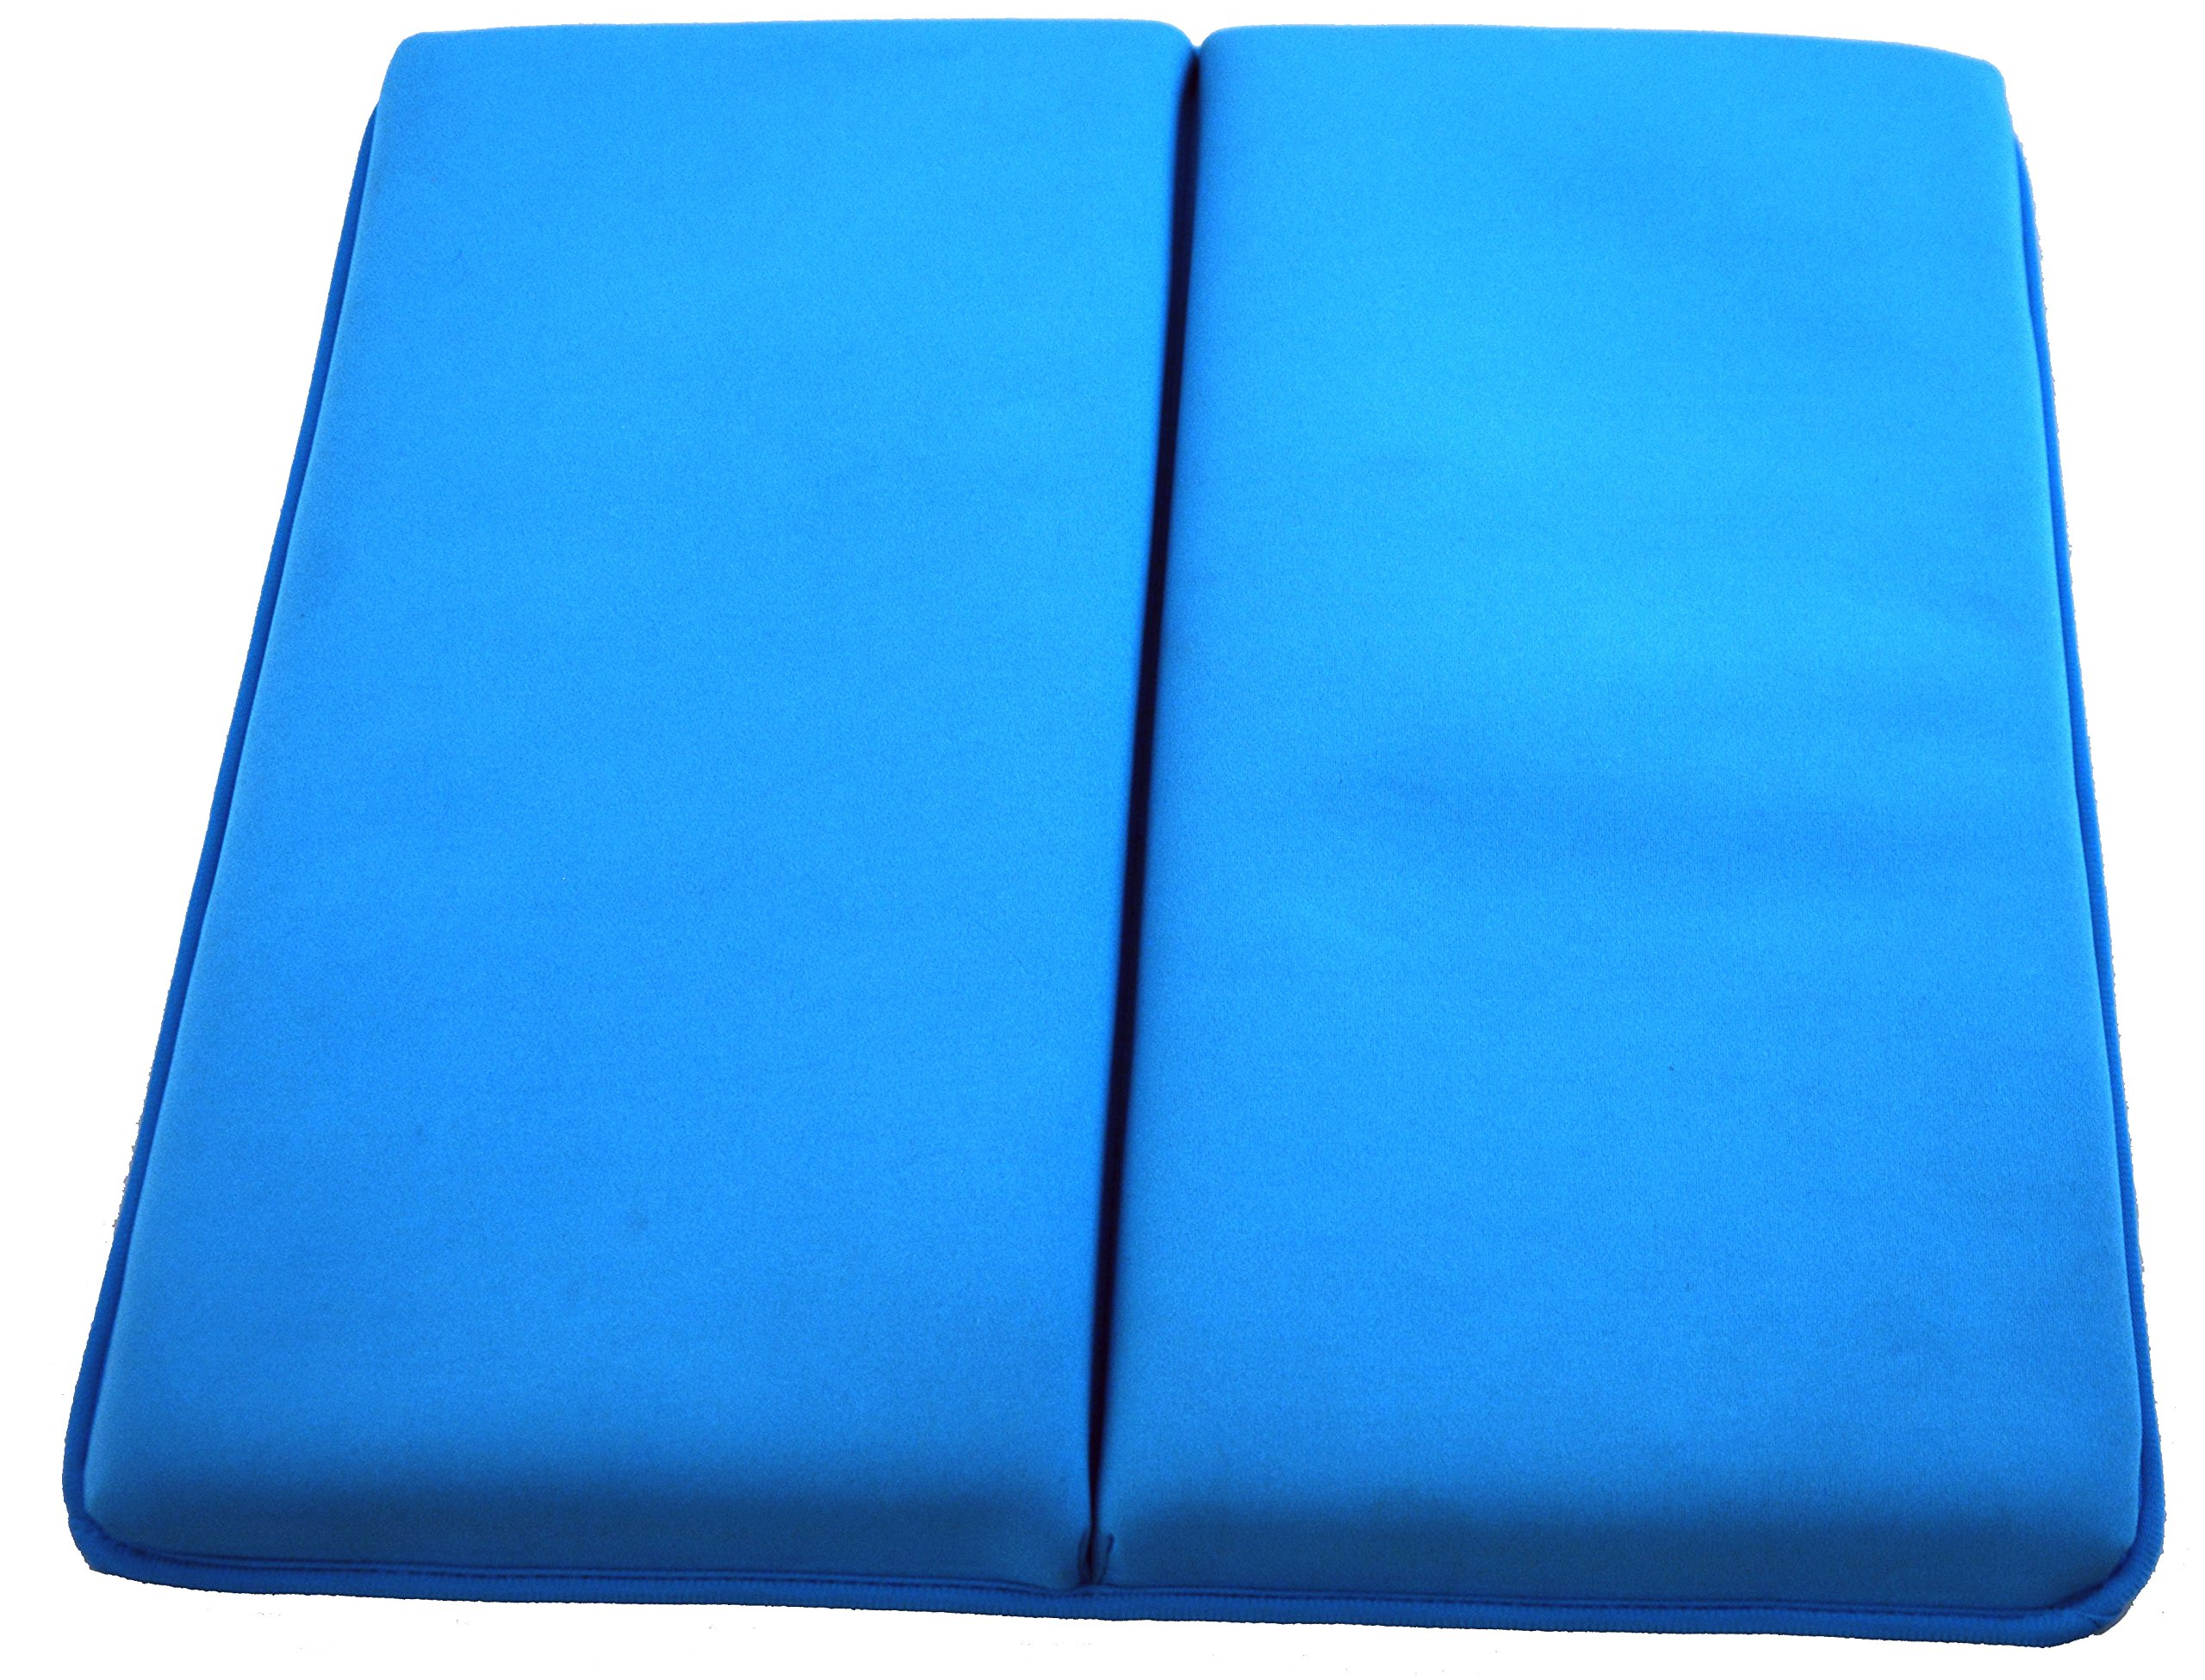 Life Upgrade Bath Kneeler in Blue - Padded Knee and Elbow Baby Bath Tub Cushion Mat with Pockets by Life Upgrade (Image #3)